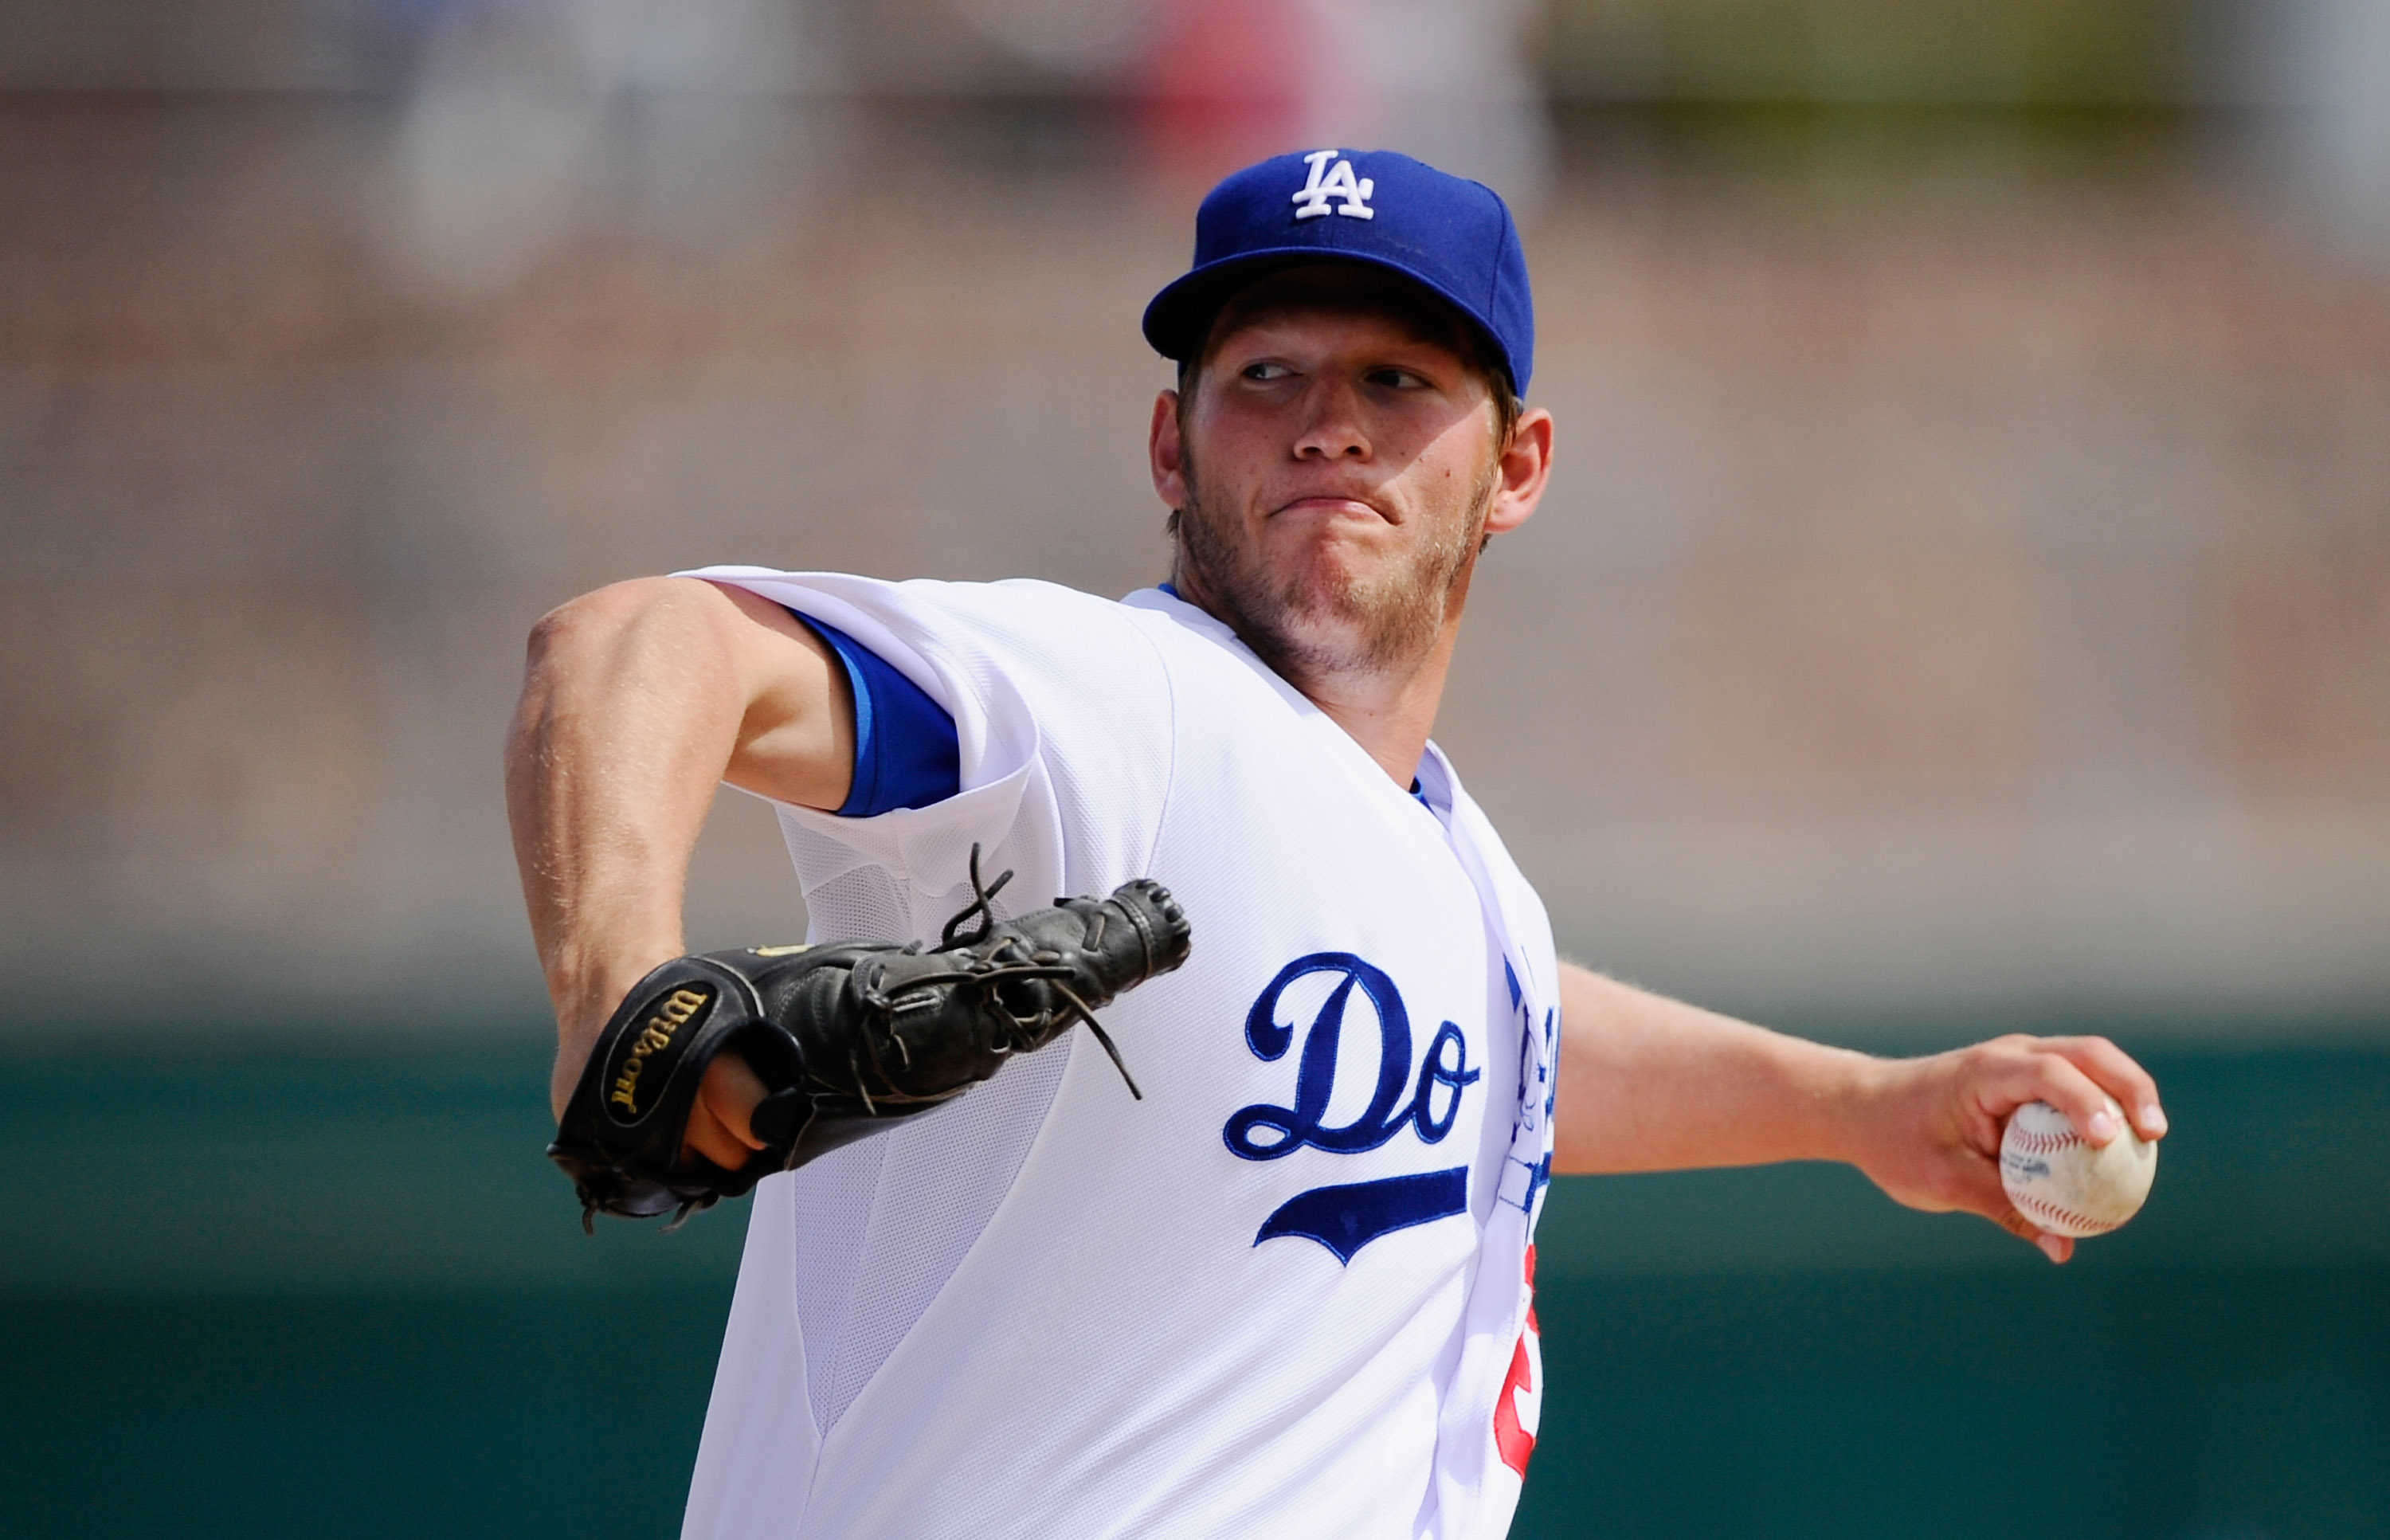 GLENDALE, AZ - MARCH 15:  Pitcher Clayton Kershaw #22 of the Los Angeles Dodgers throws a pitch against Texas Rangers during the spring training baseball game at Camelback Ranch on March 15, 2011 in Glendale, Arizona.  (Photo by Kevork Djansezian/Getty Im